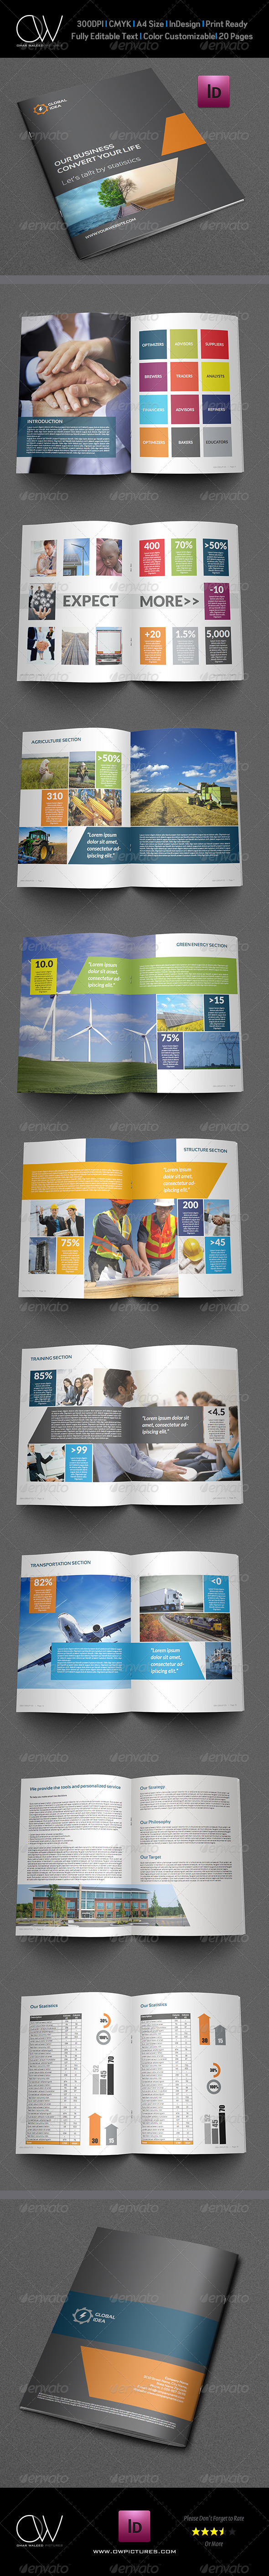 GraphicRiver Corporate Brochure Template Vol.4 20 Pages 5483867